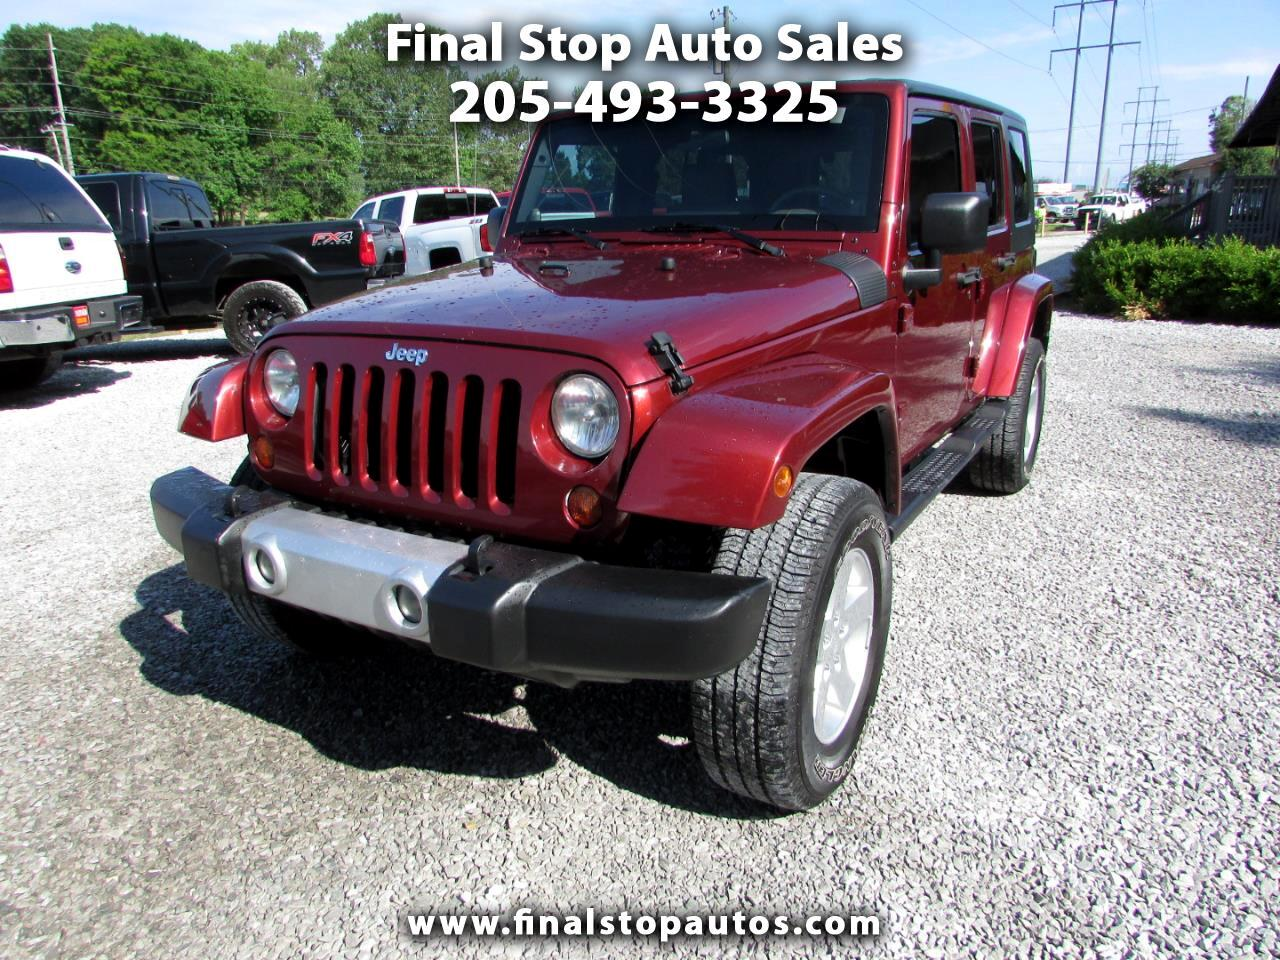 Jeep Wrangler RWD 4dr Unlimited Sahara 2008